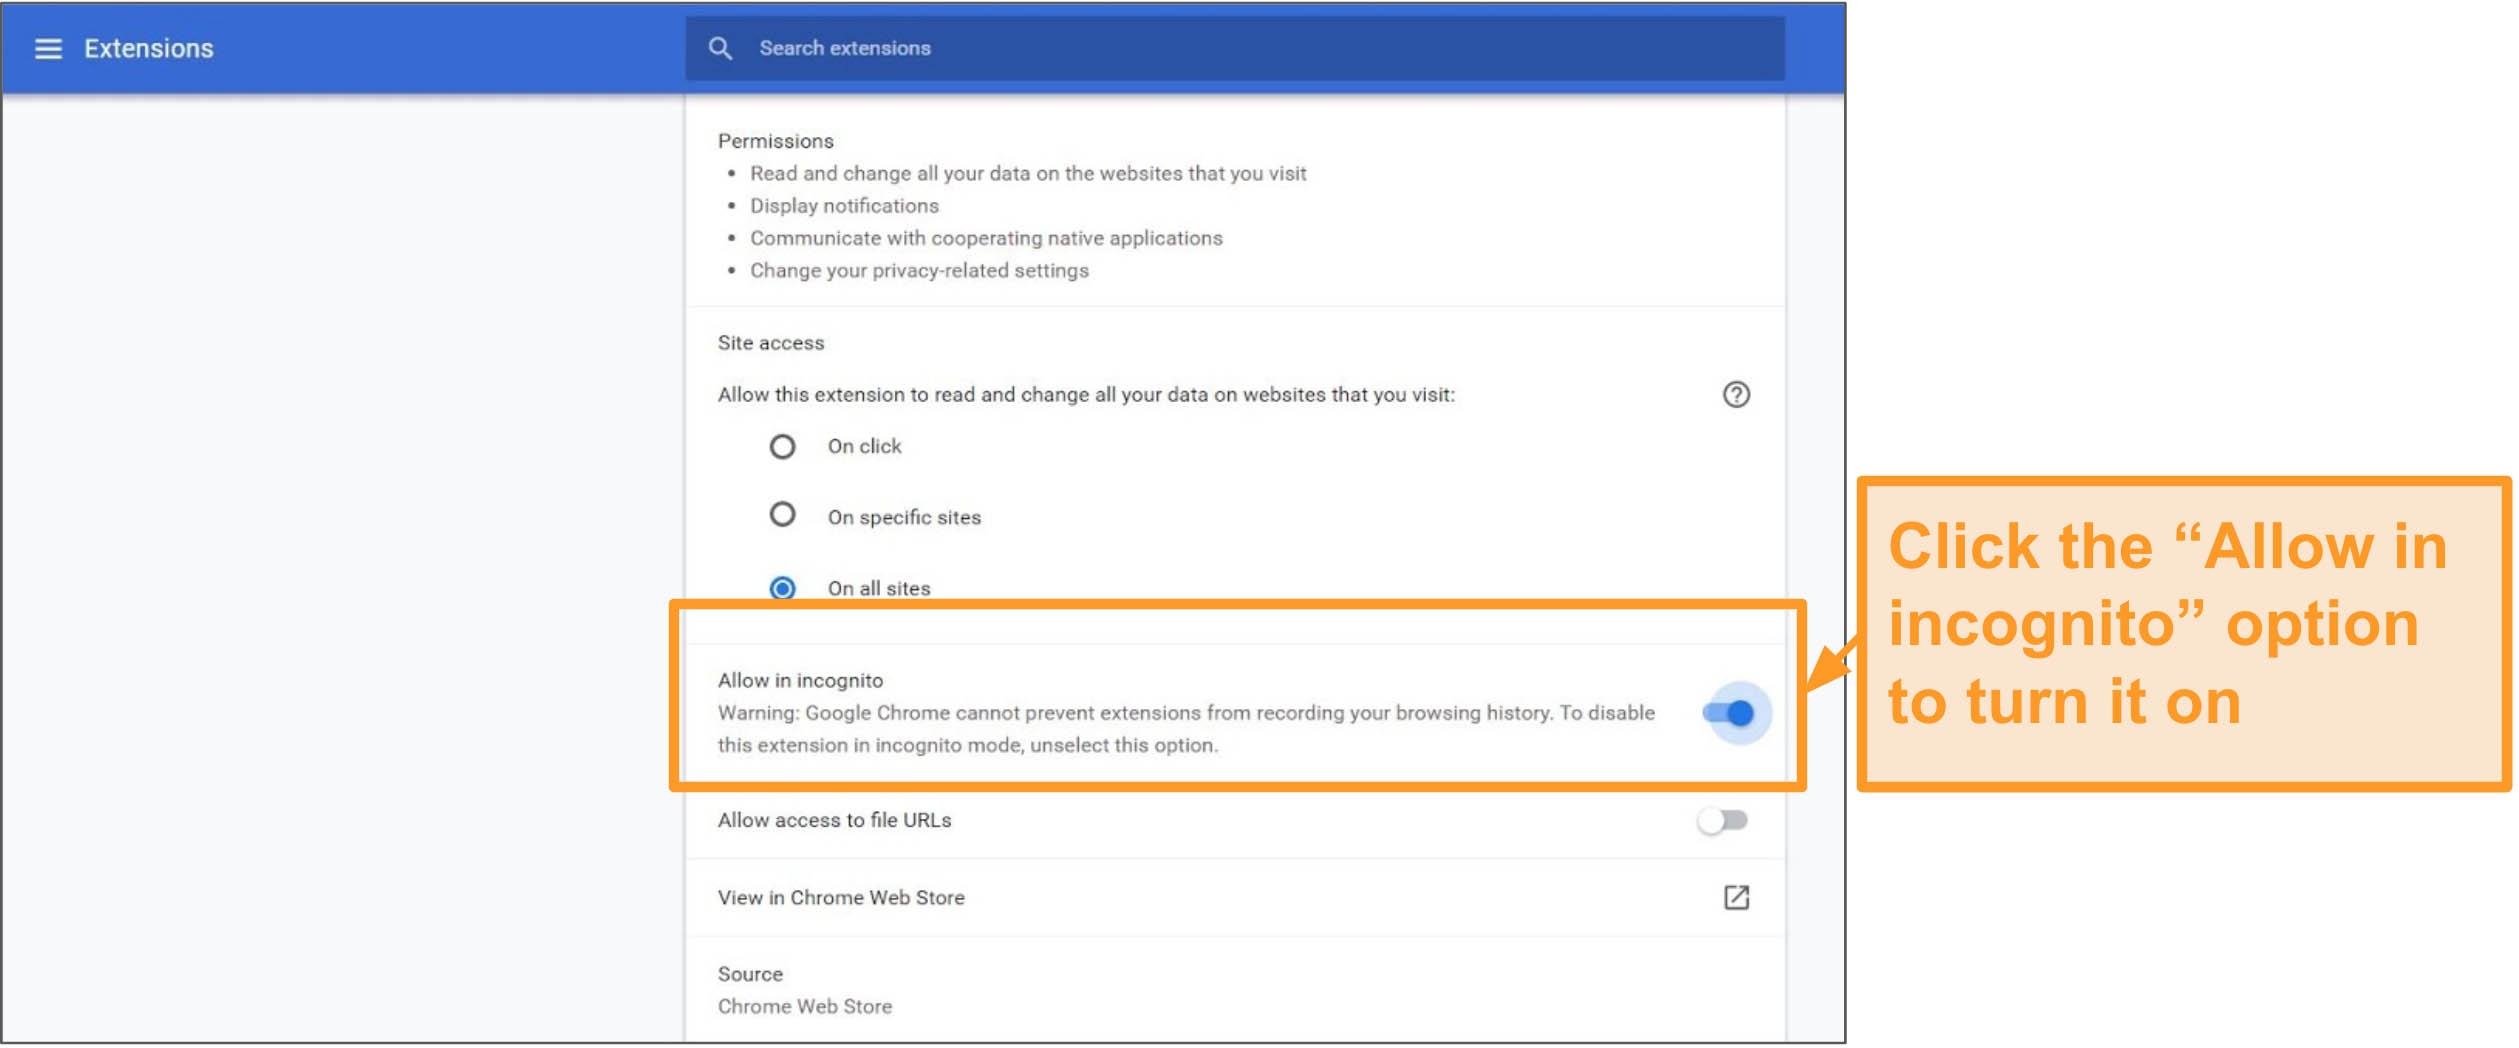 Screenshot of Google Chrome browser extension settings.